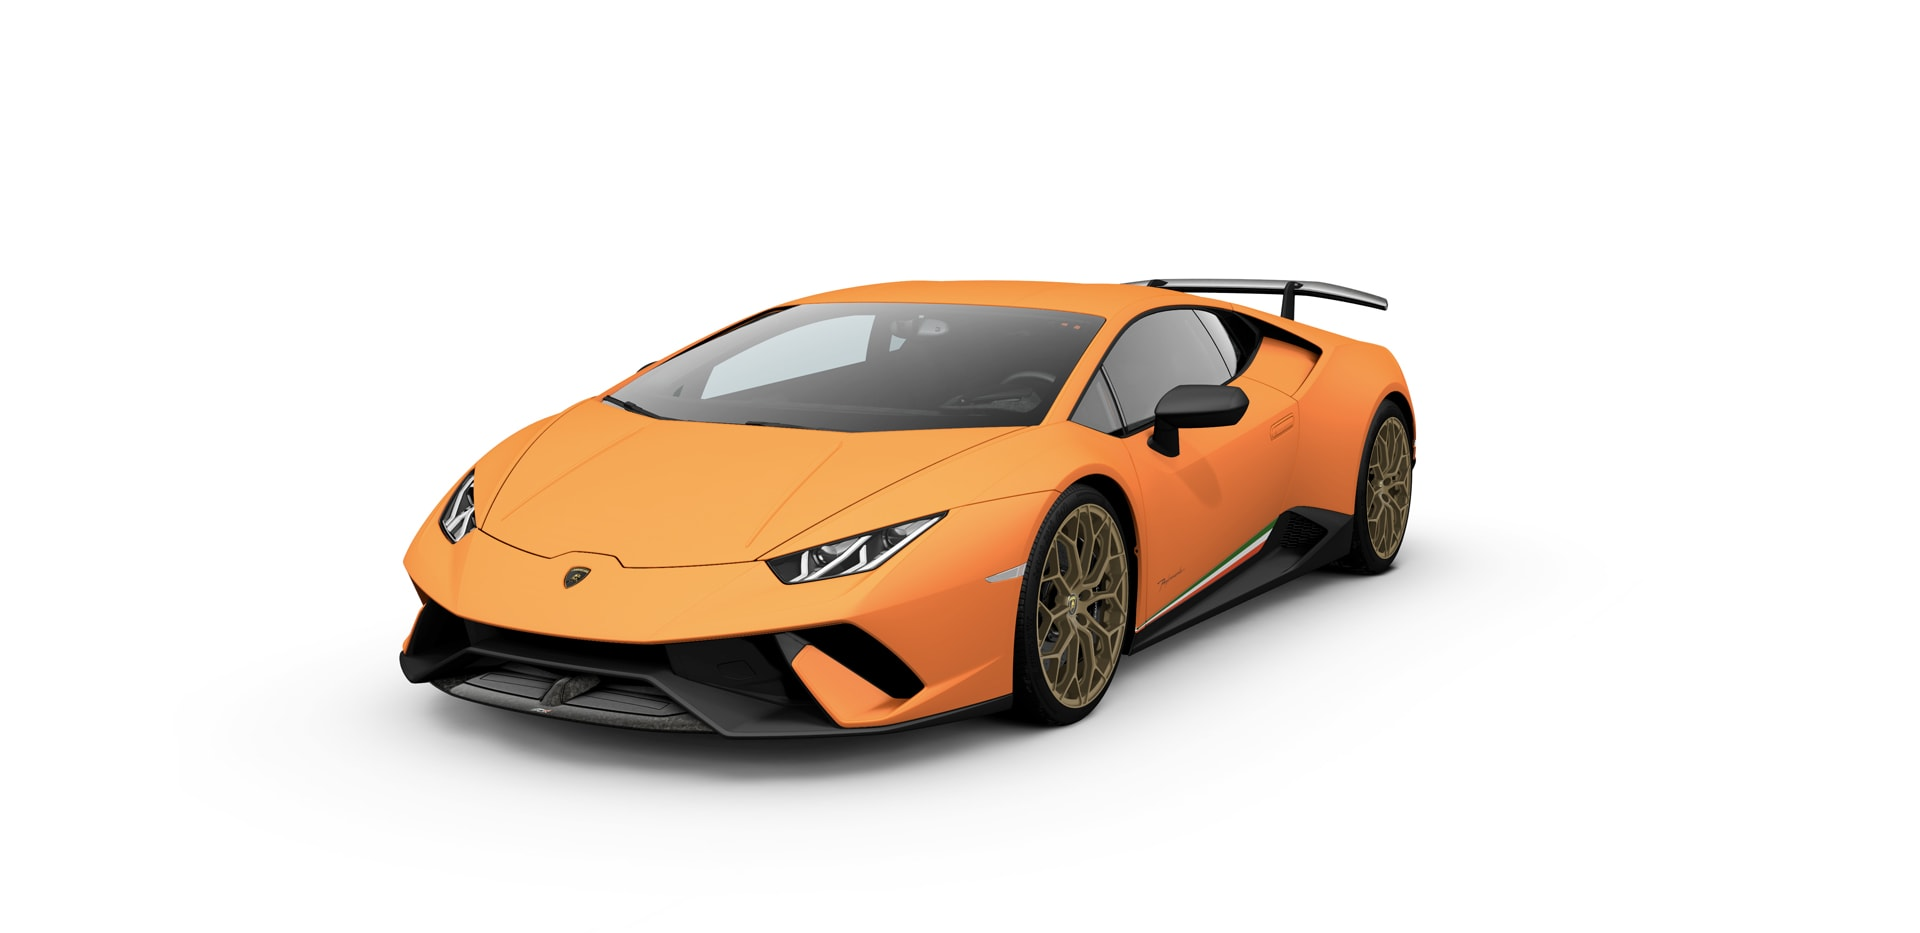 Lamborghini Huracán Performante - Technical Specifications, Pictures on gold chrome lamborghini aventador, pure gold bugatti, pure gold audi, gold plated lamborghini aventador, bugatti aventador, pure gold lamborghini cars, pure gold ford fusion, real gold lamborghini aventador, liquid gold lamborghini aventador, pure gold ford ranger, rose gold lamborghini aventador, pure diamond lamborghini, pure gold range rover, pure gold lamborghini veneno,